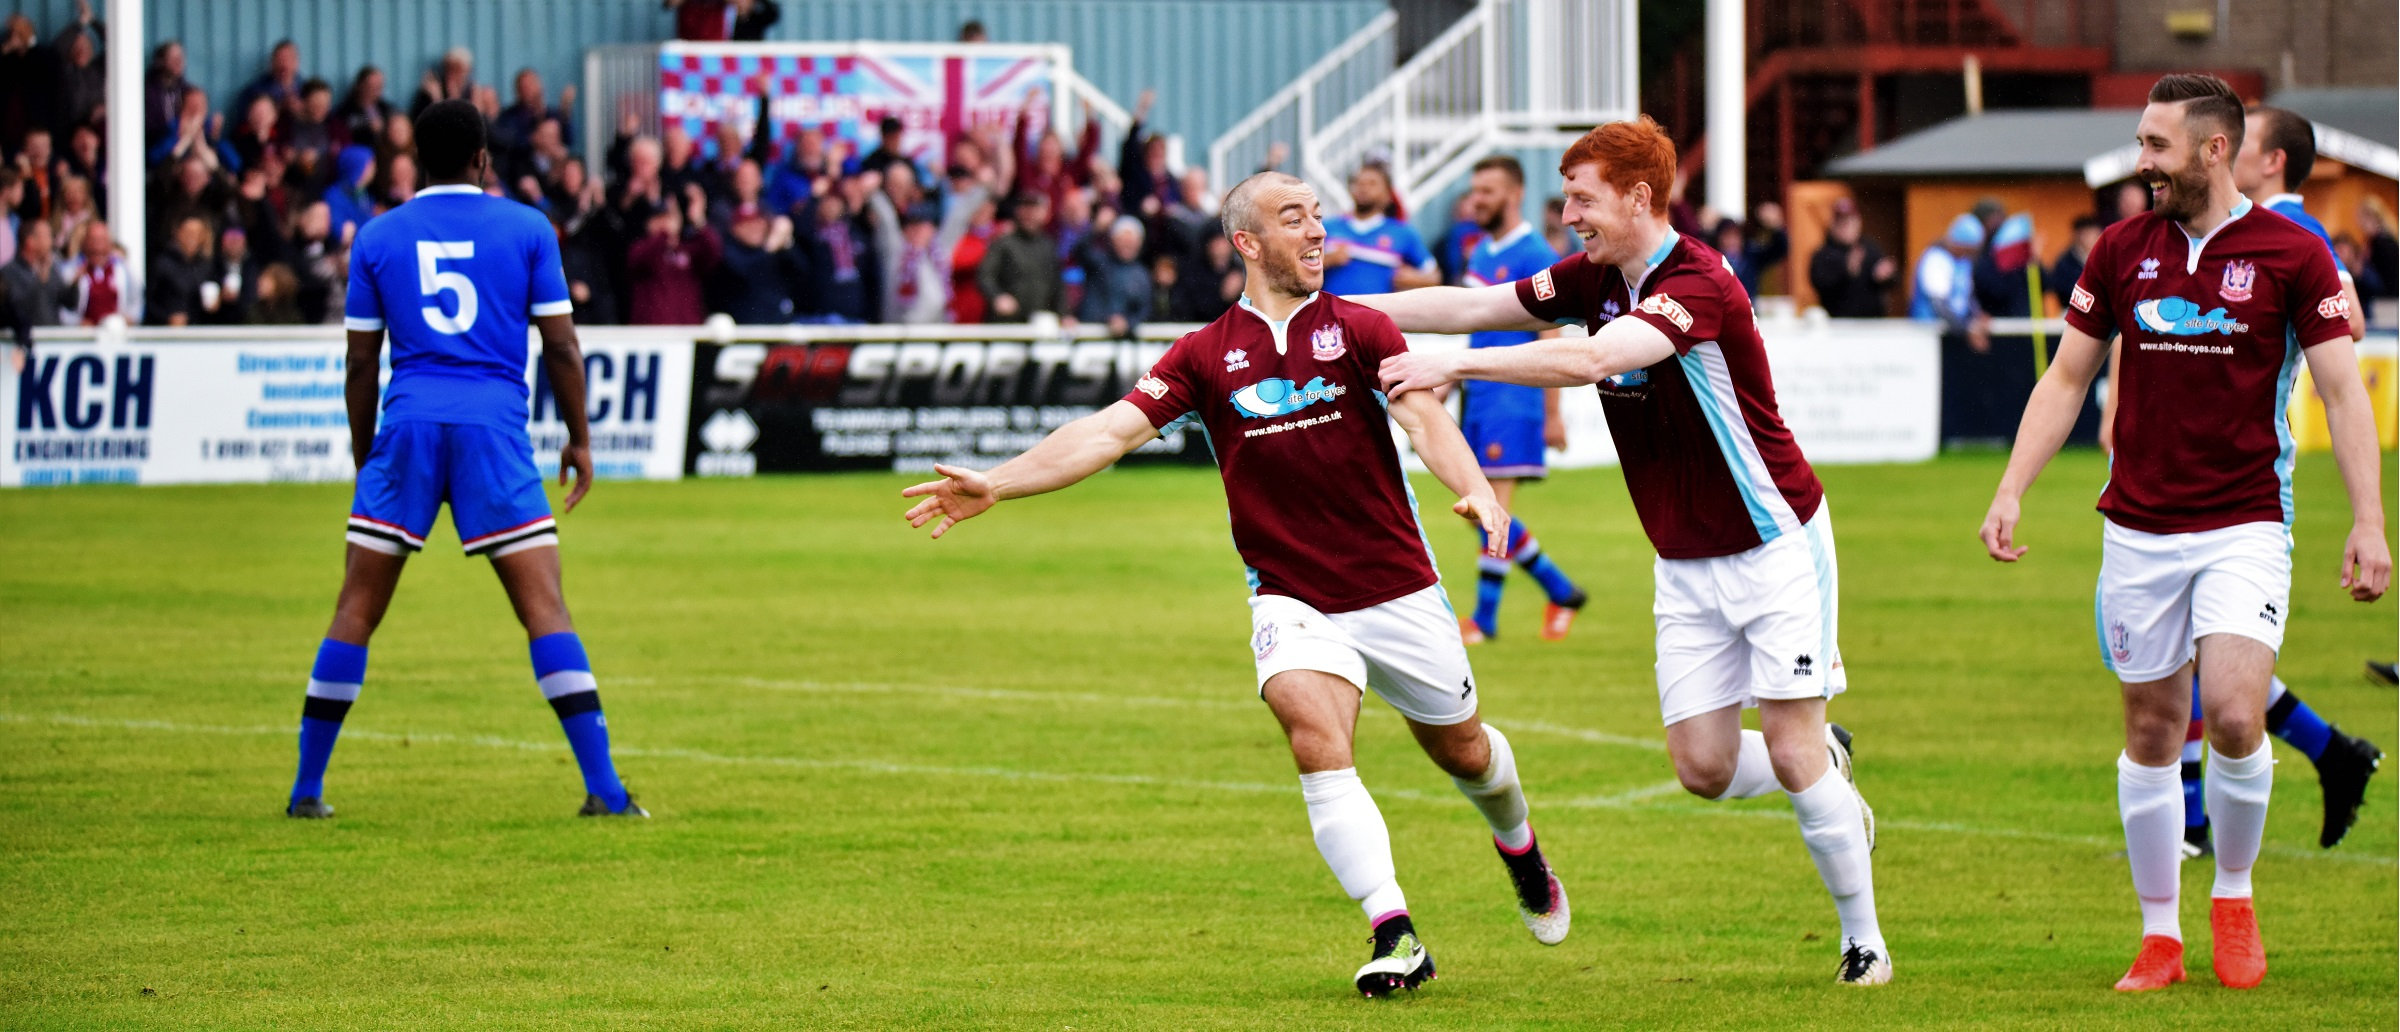 South Shields vs FC United of Manchester